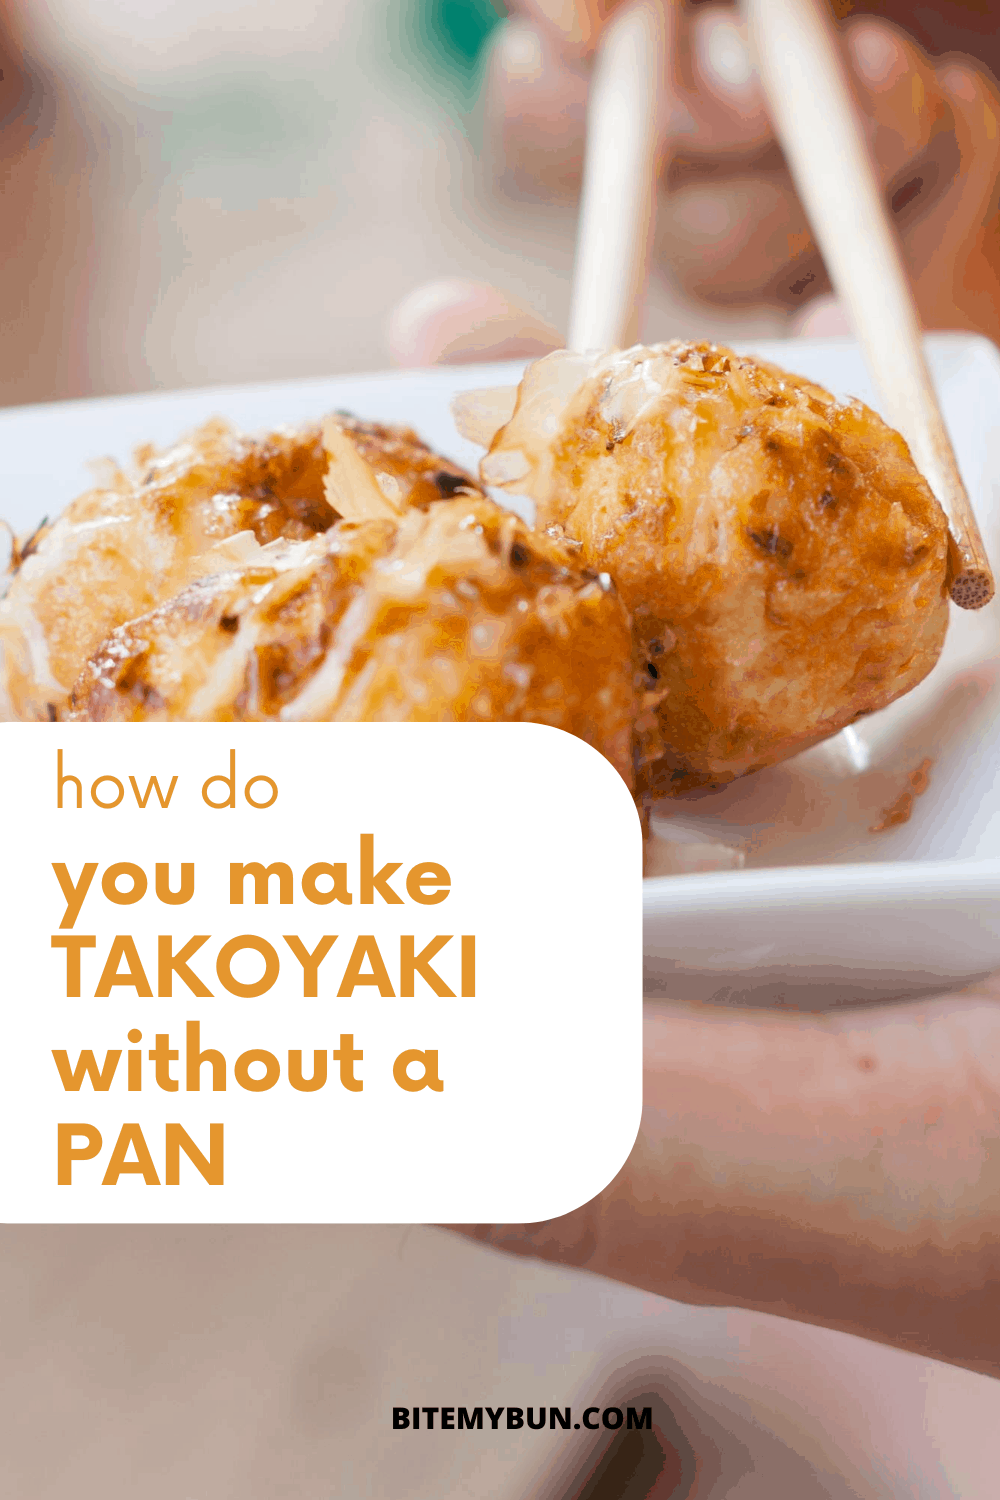 How do you make takoyaki without a pam